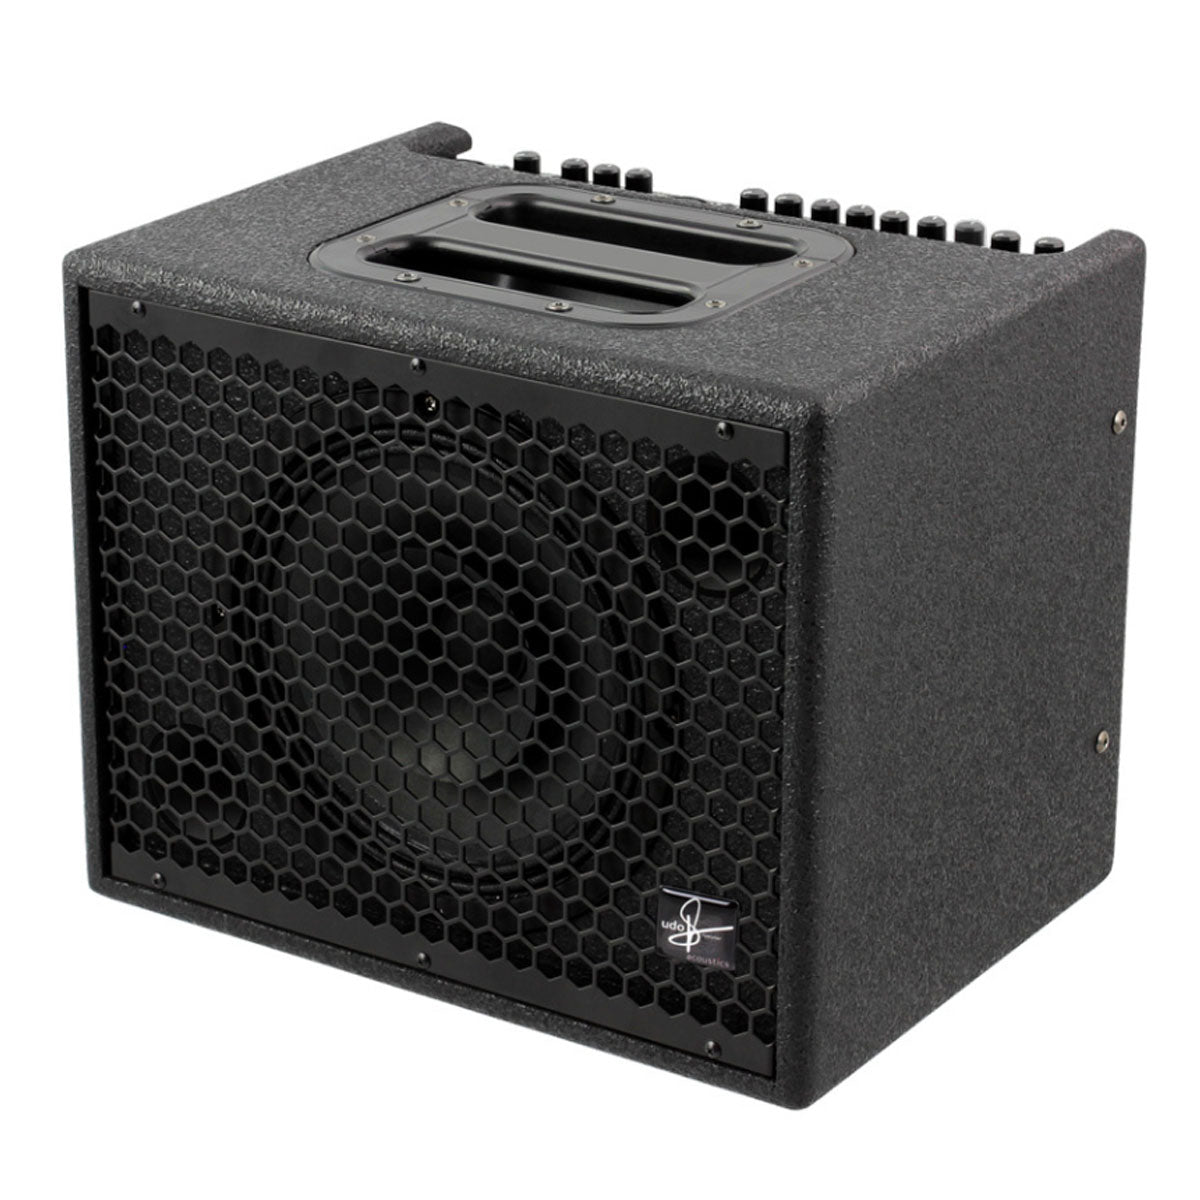 Udo Roesner Amps Da Capo 75 Acoustic Guitar Amplifier 75w Amp